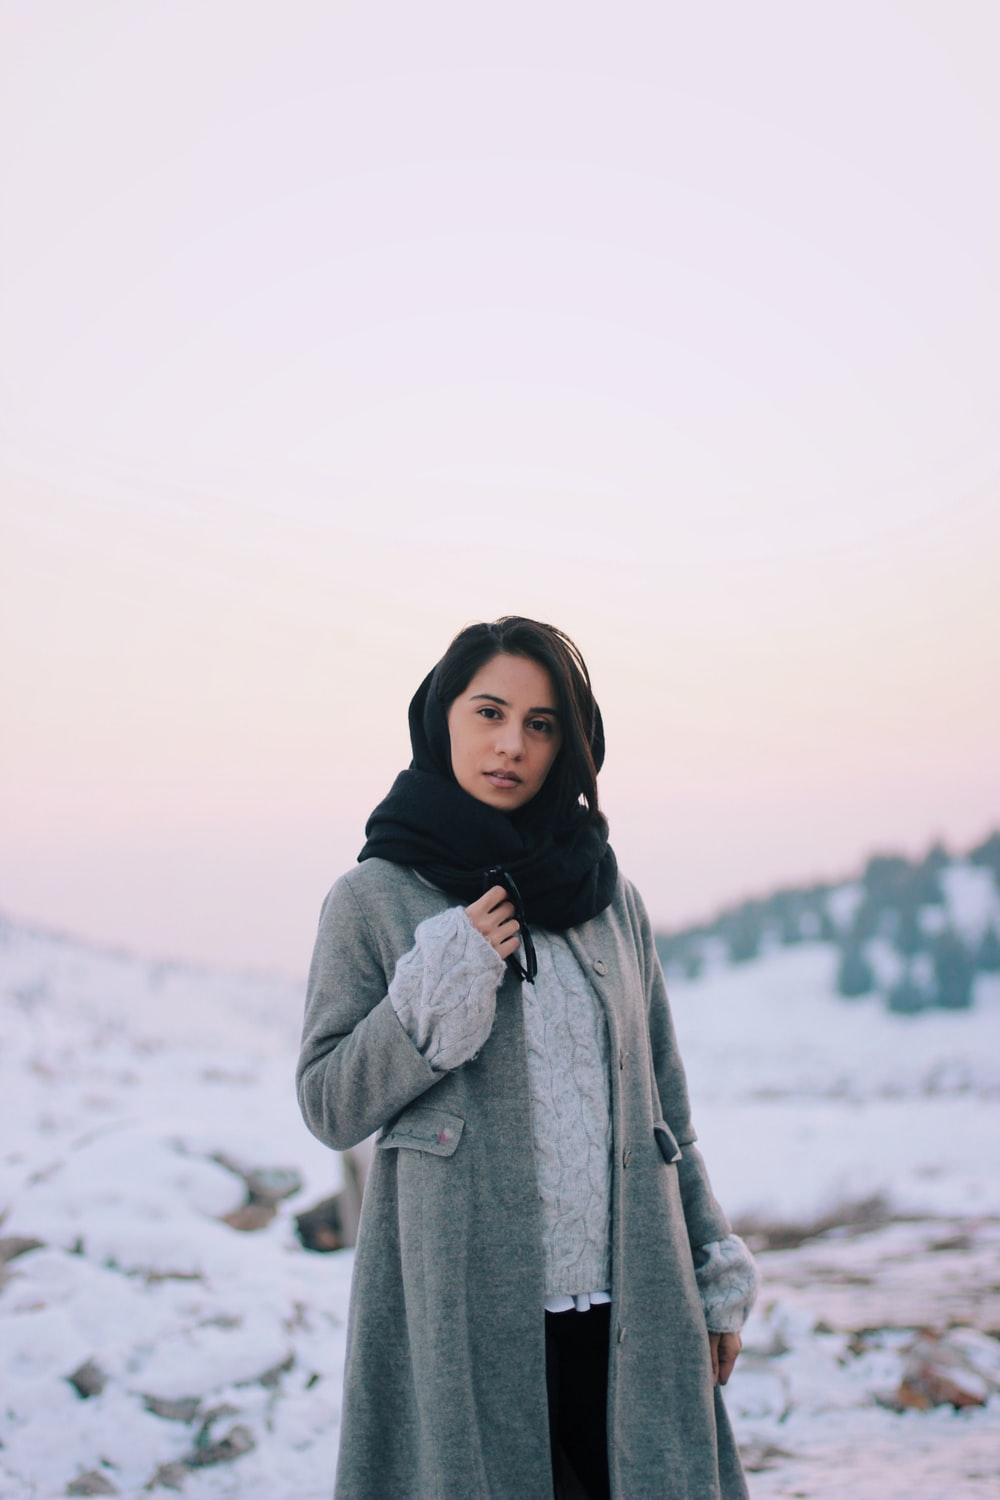 woman in gray coat standing on snow covered ground during daytime